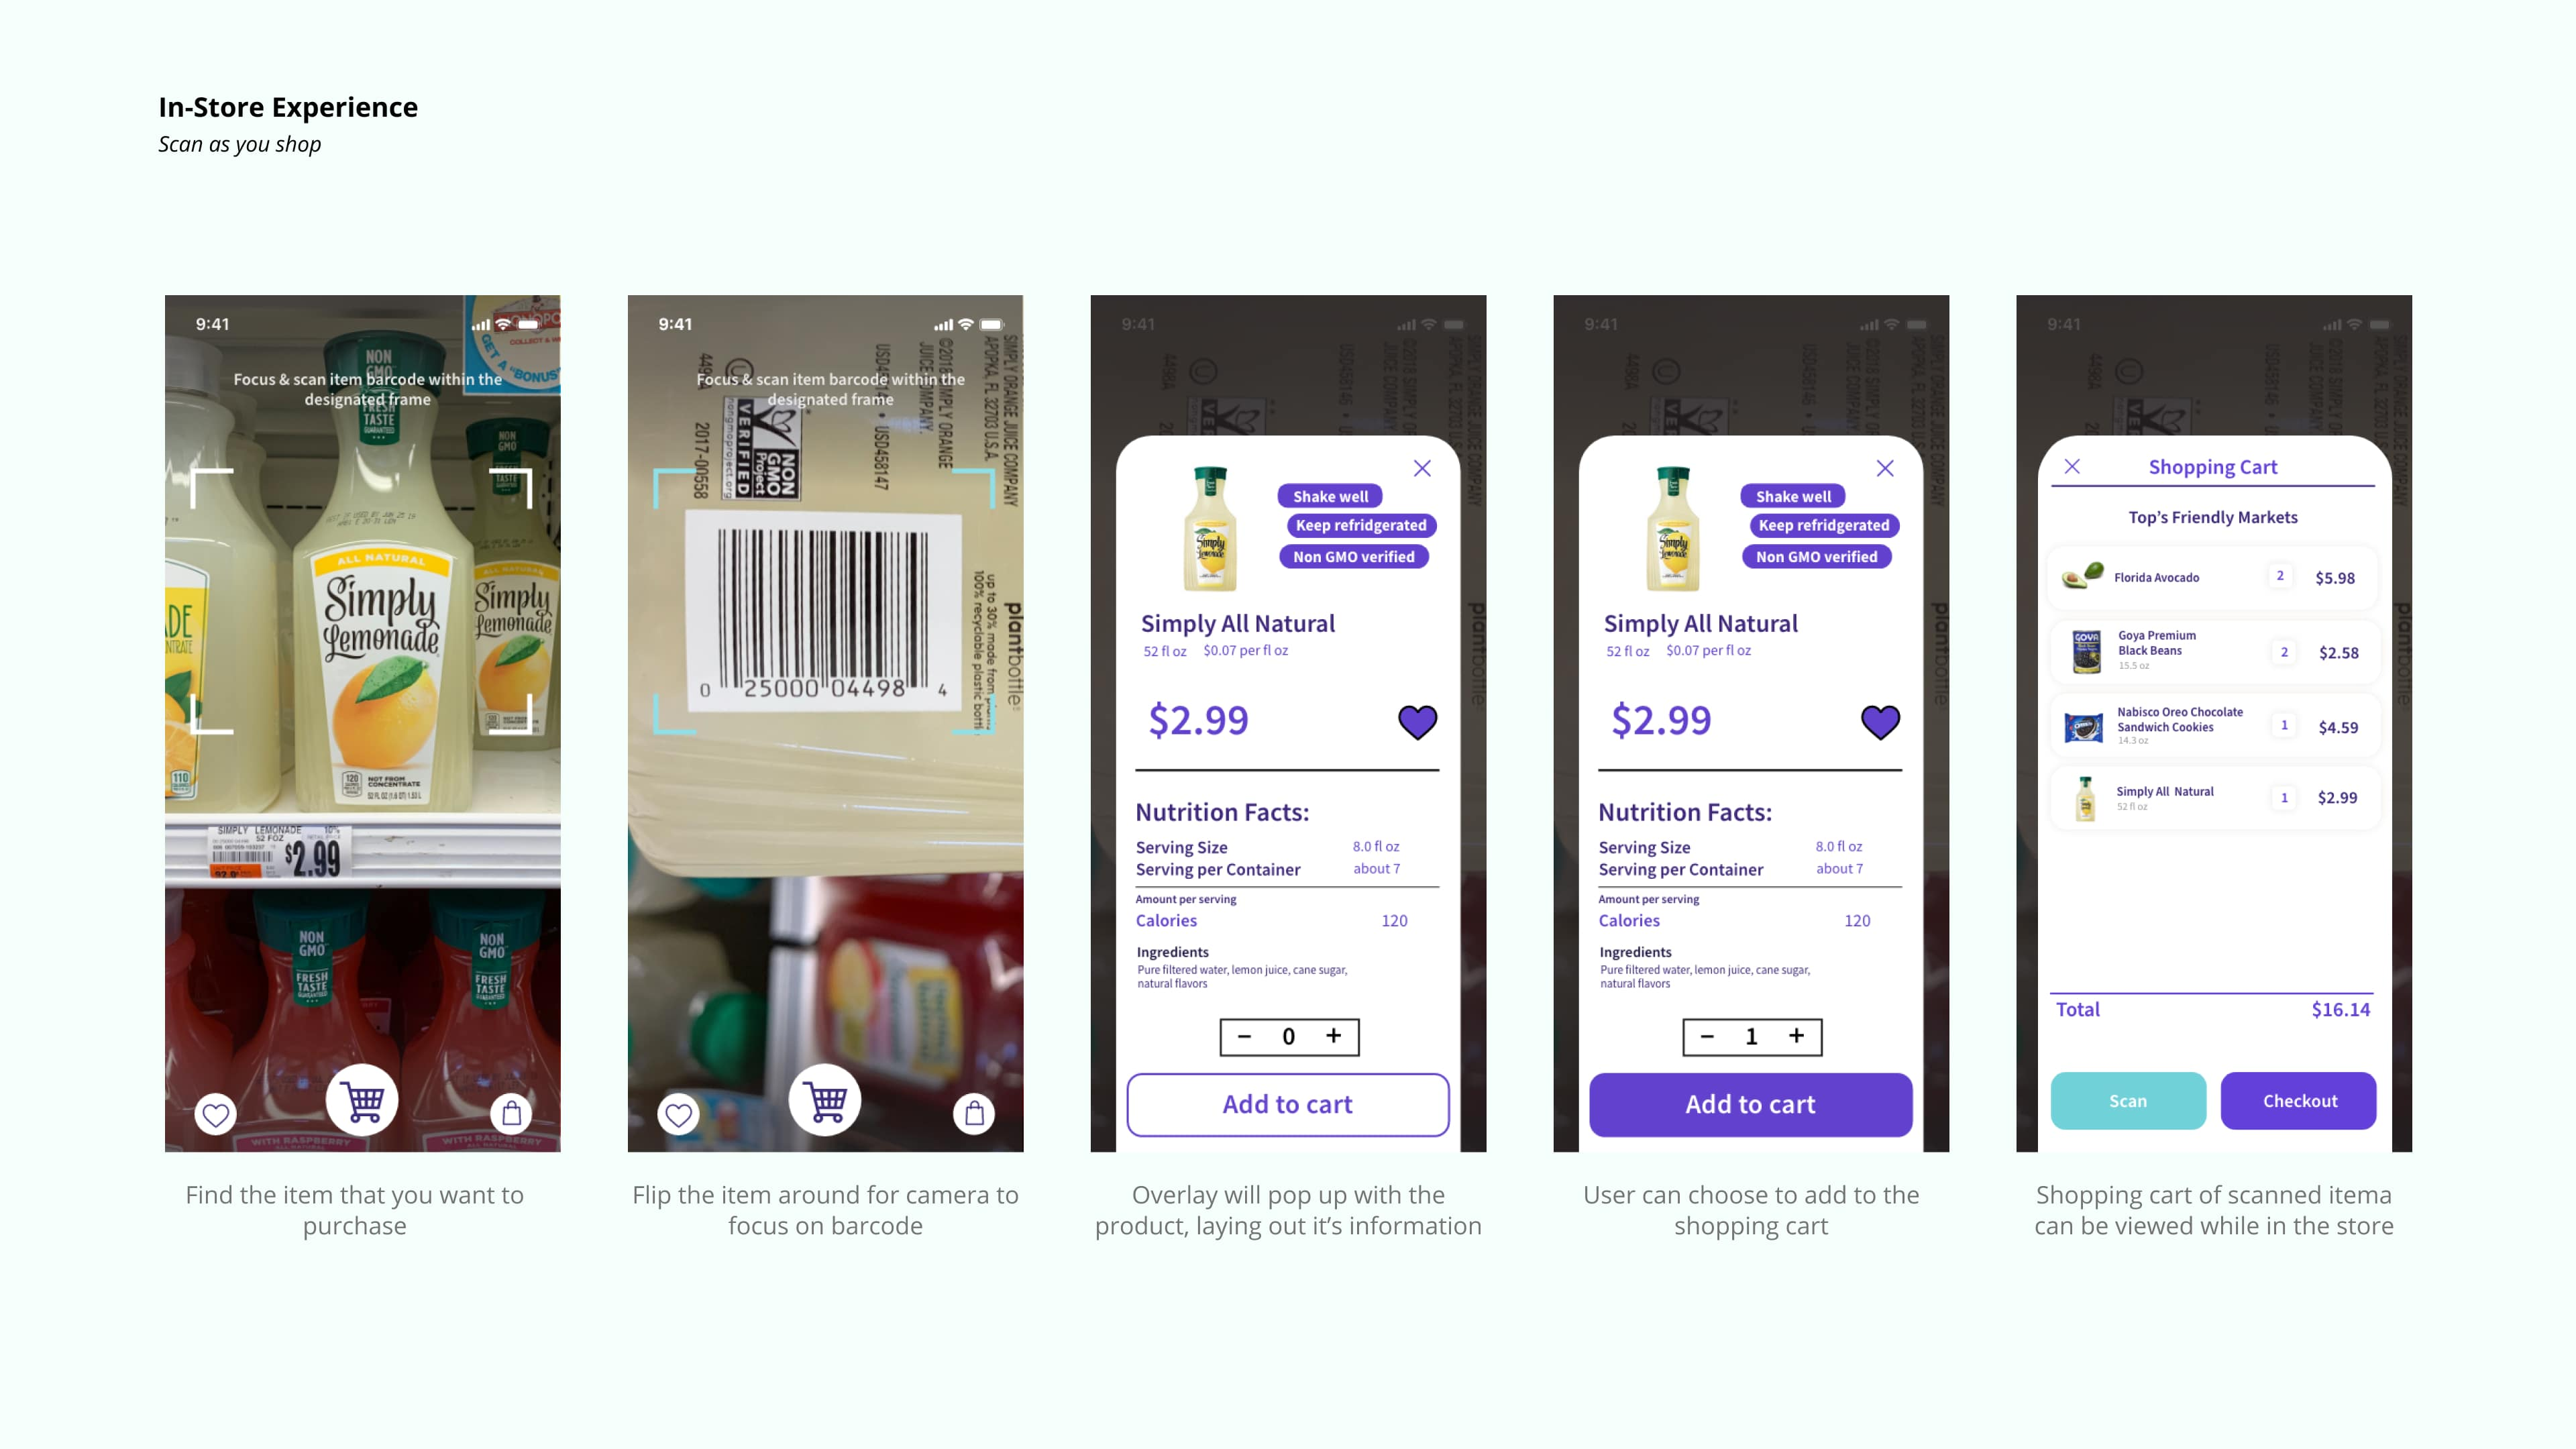 In-store experience showing the scanning of products when in the store